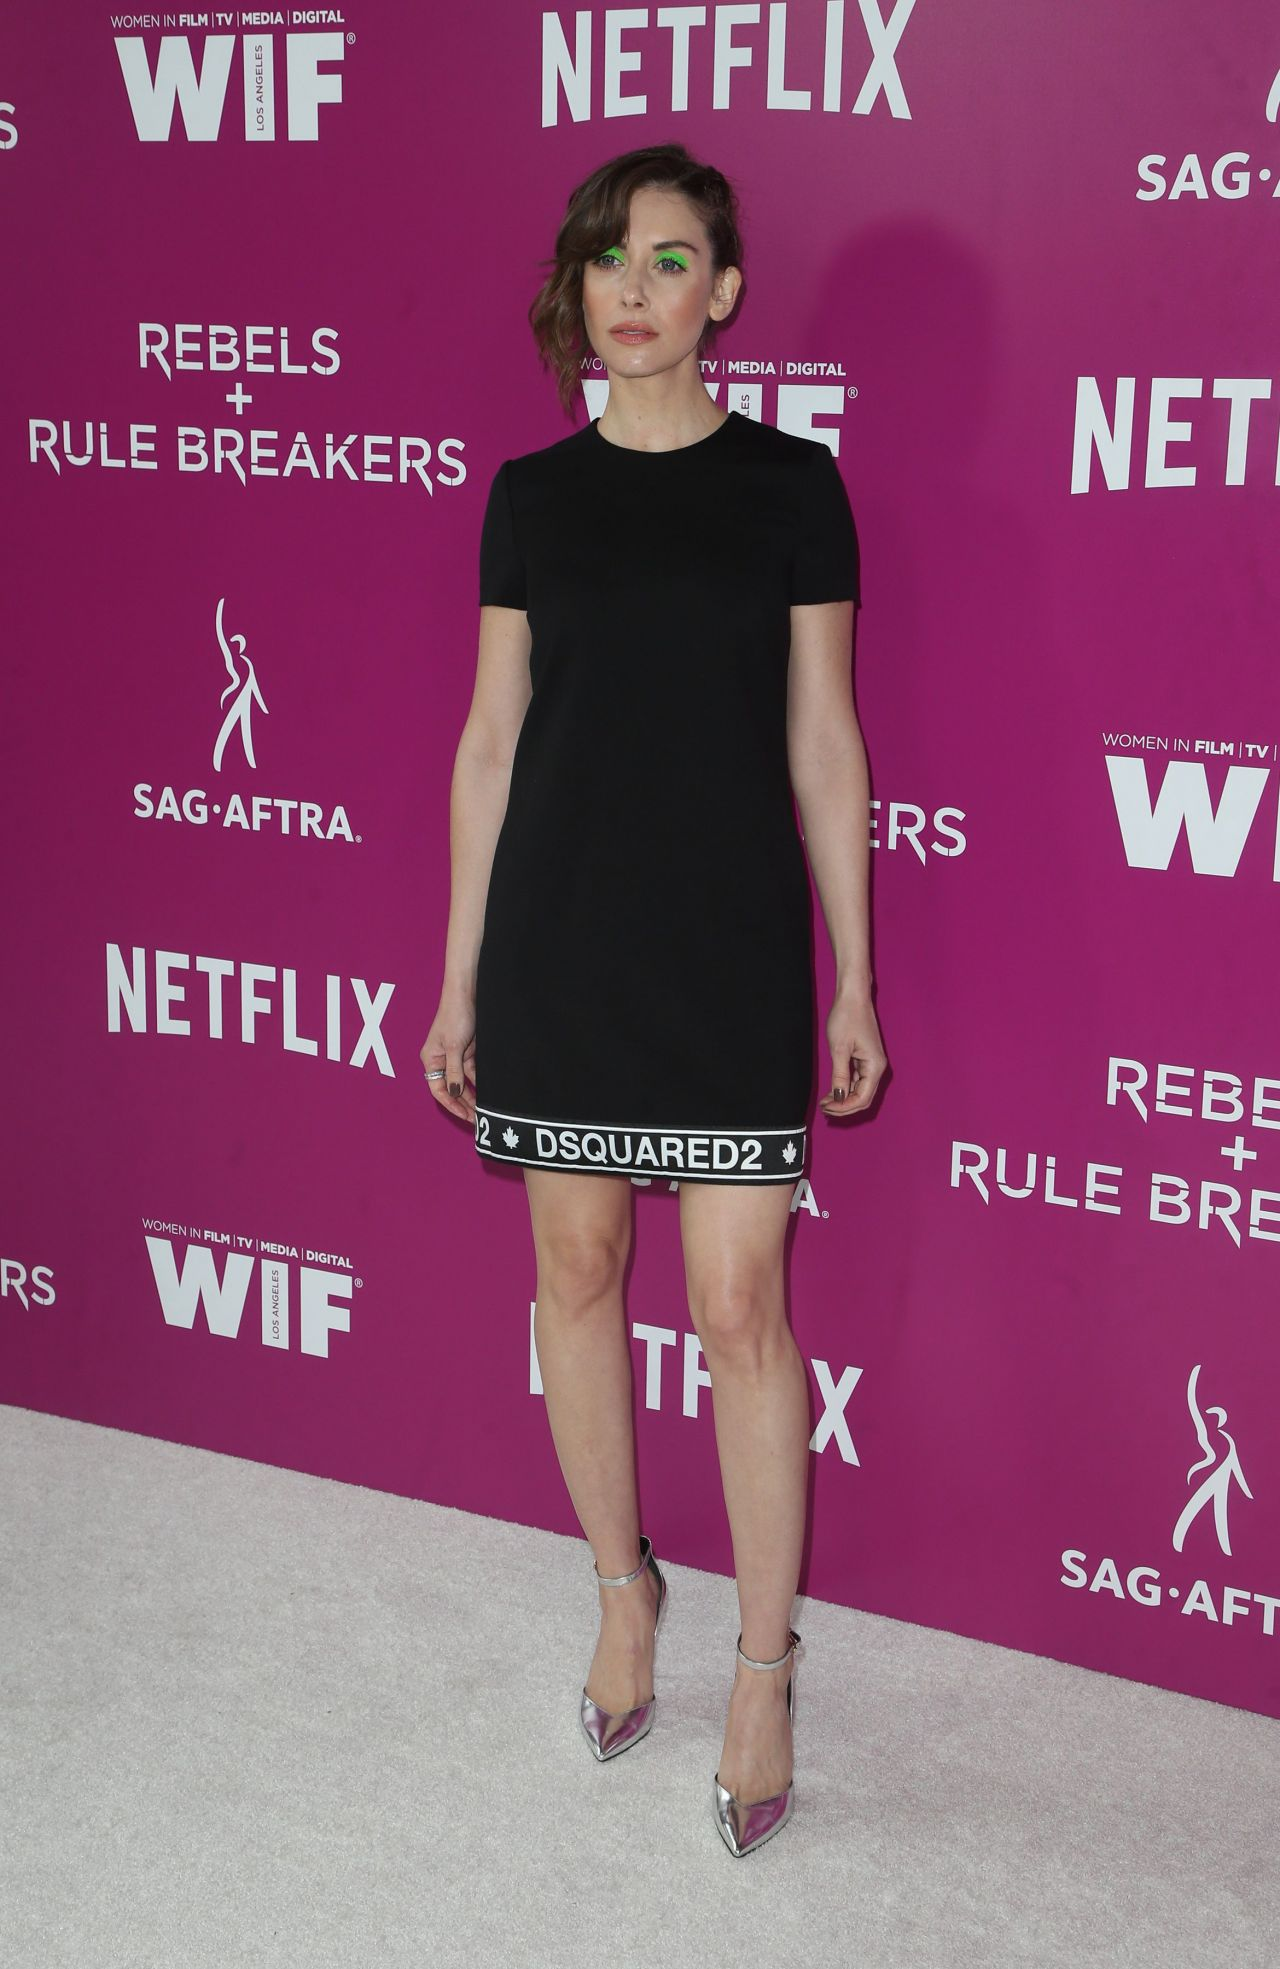 http://celebmafia.com/wp-content/uploads/2018/05/alison-brie-rebels-and-rule-breakers-fyc-event-in-la-6.jpg